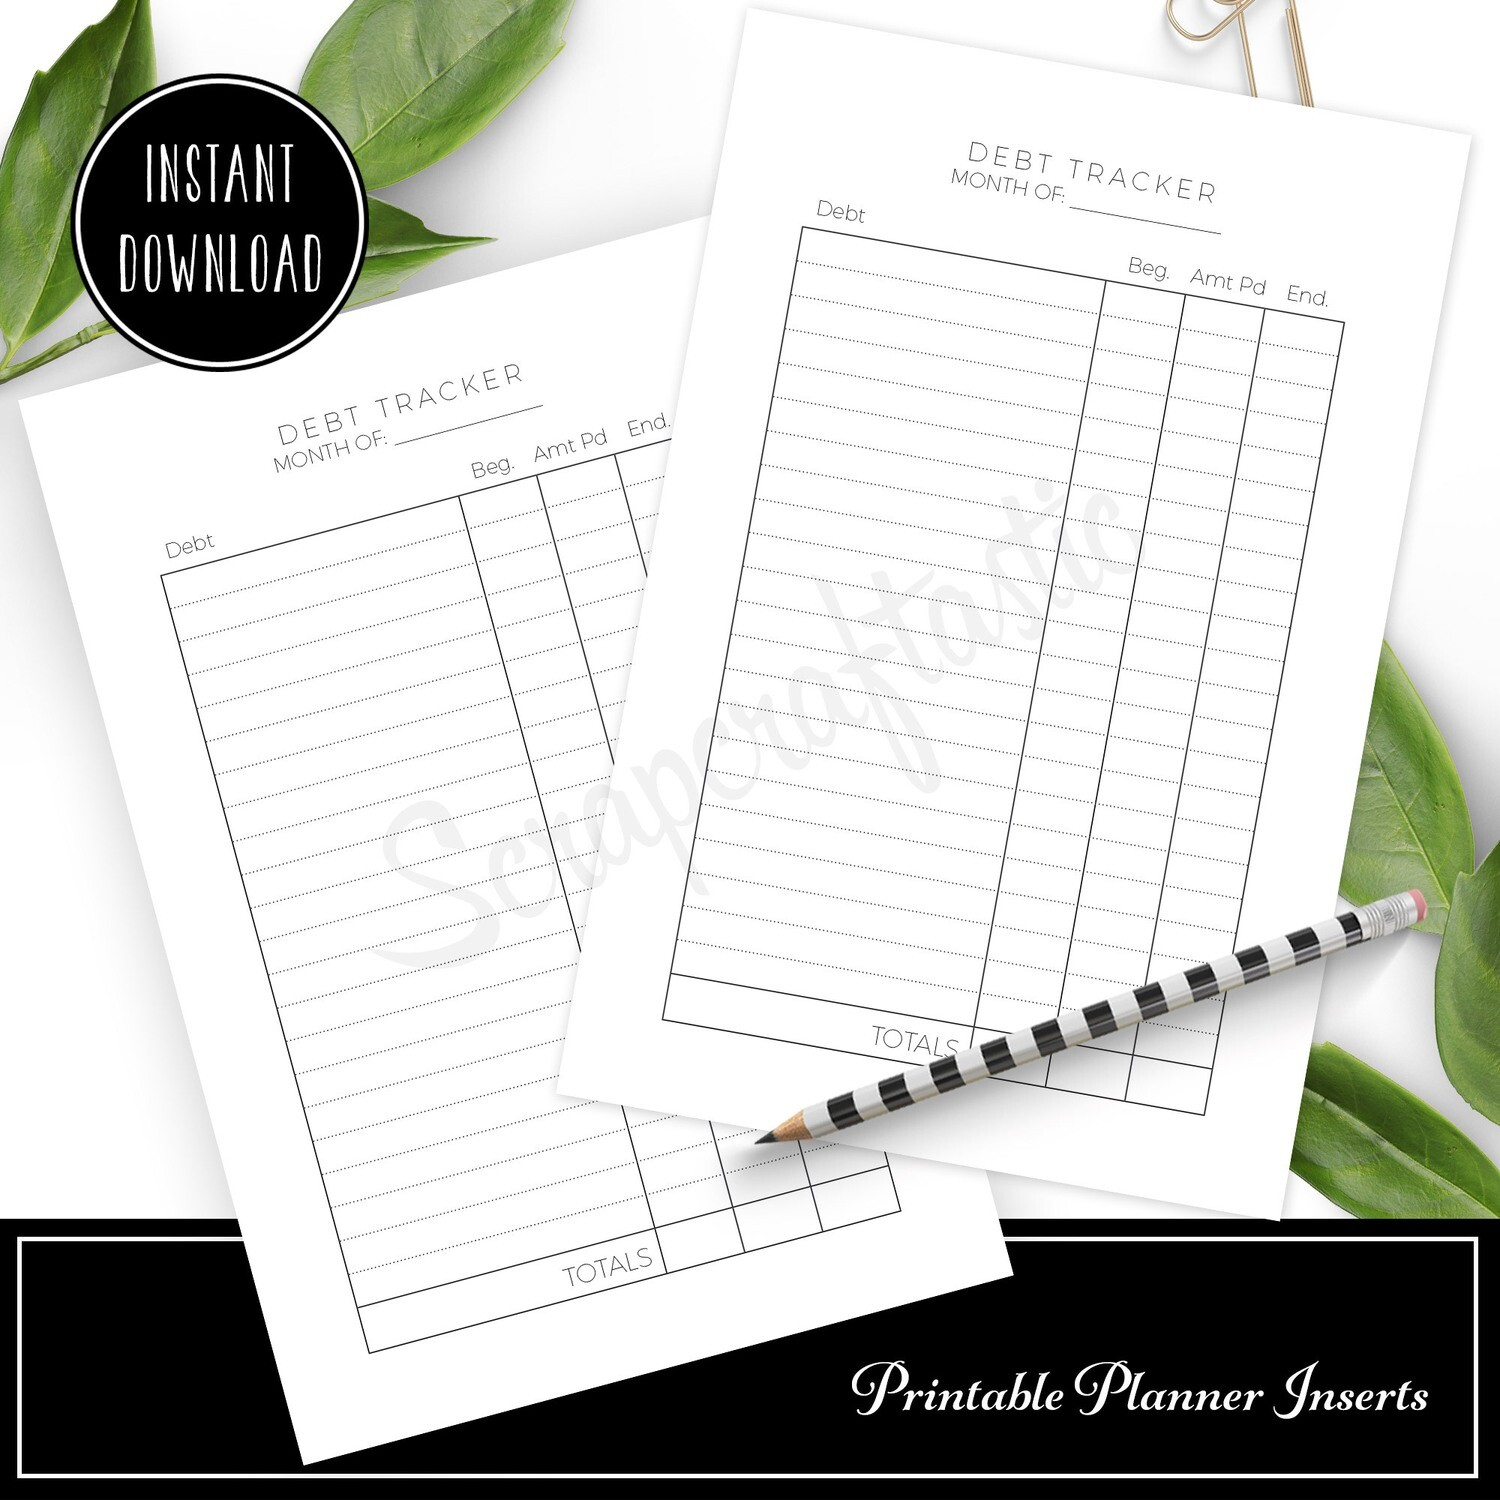 HALF LETTER A5 - Debt Tracker Budget Printable Planner Inserts